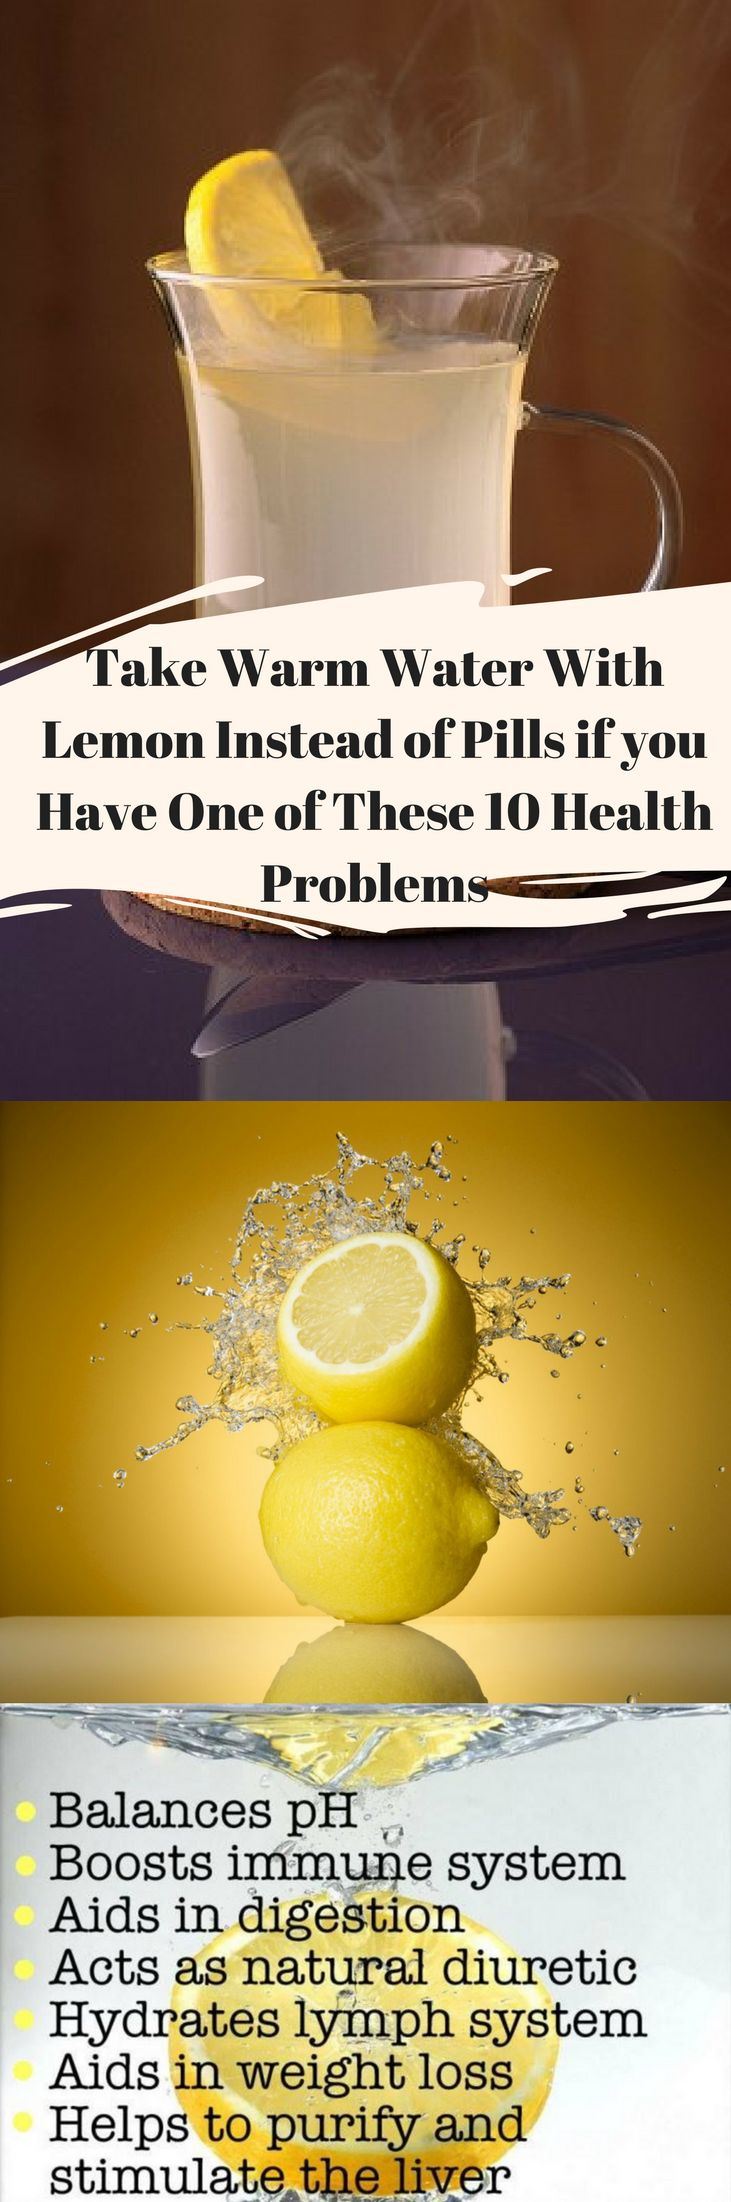 Take Warm Water With Lemon Instead of Pills if you Have One of These 10 Health Problems